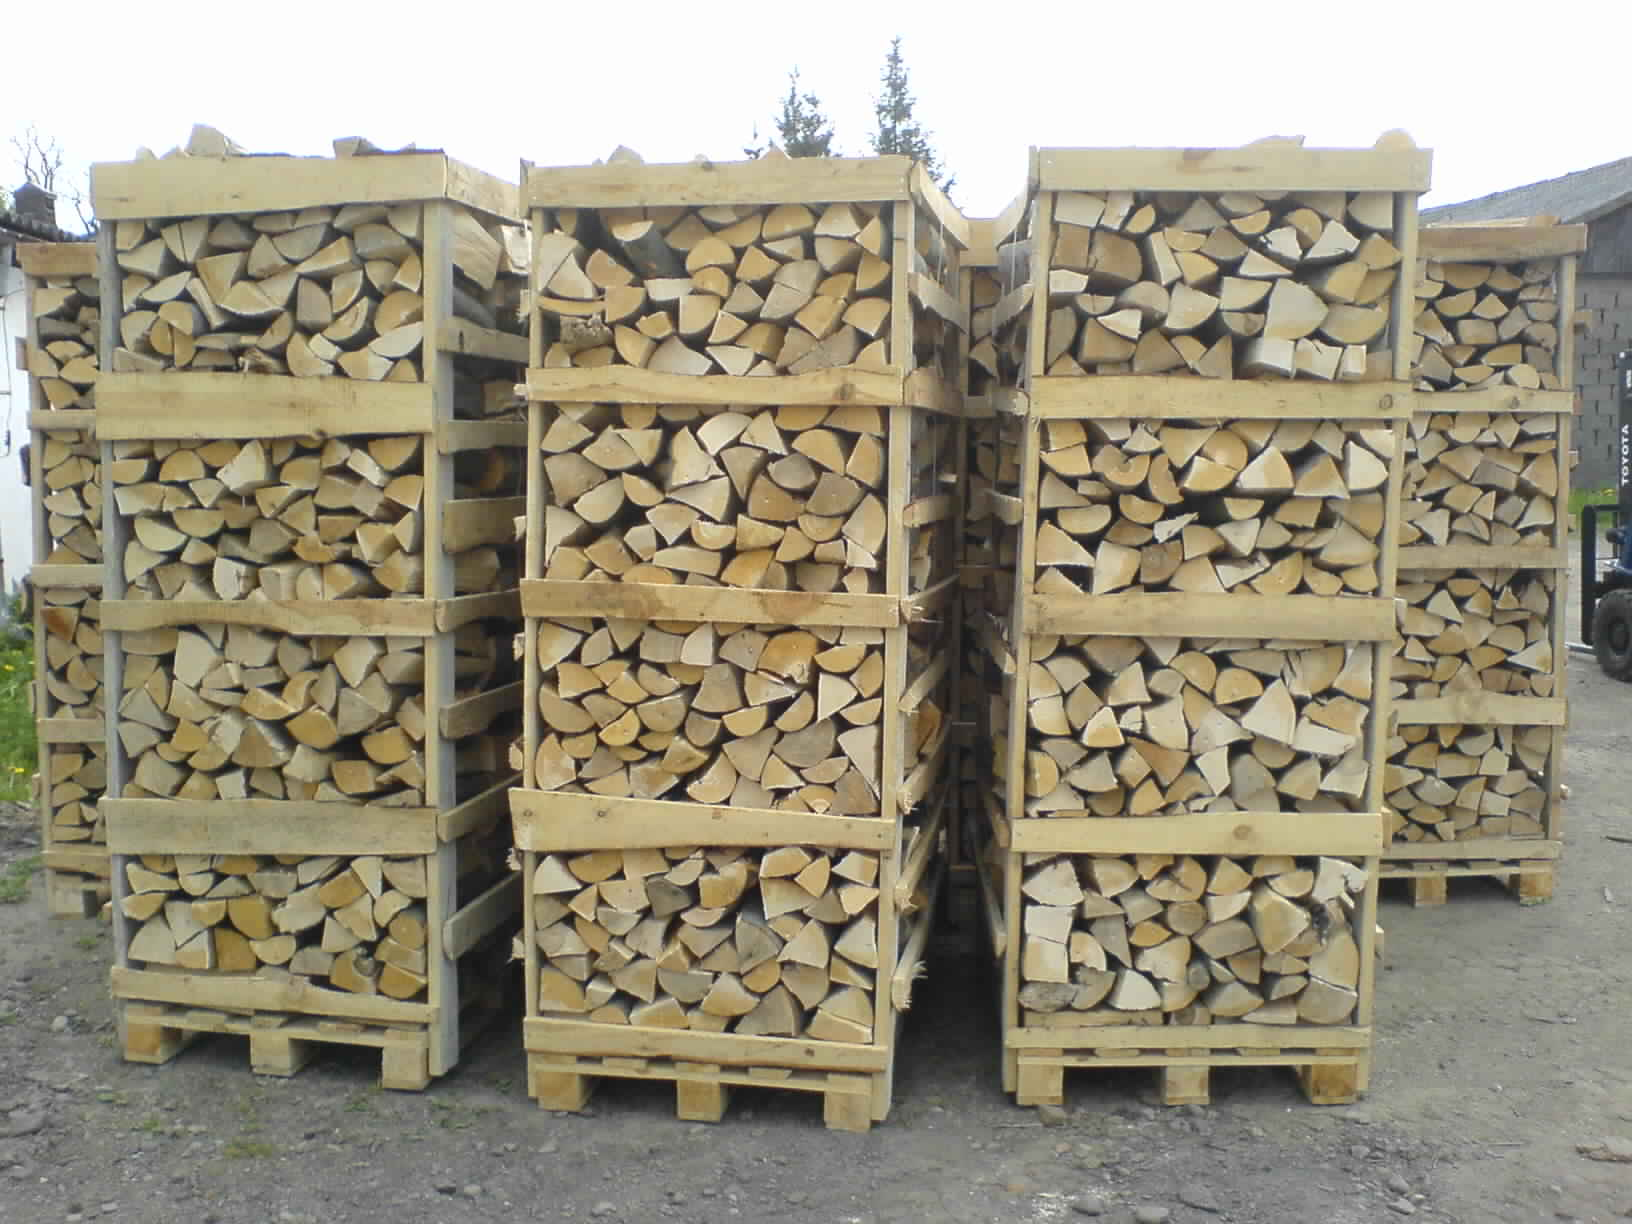 DIY Outdoor Firewood Rack storage levels boxes